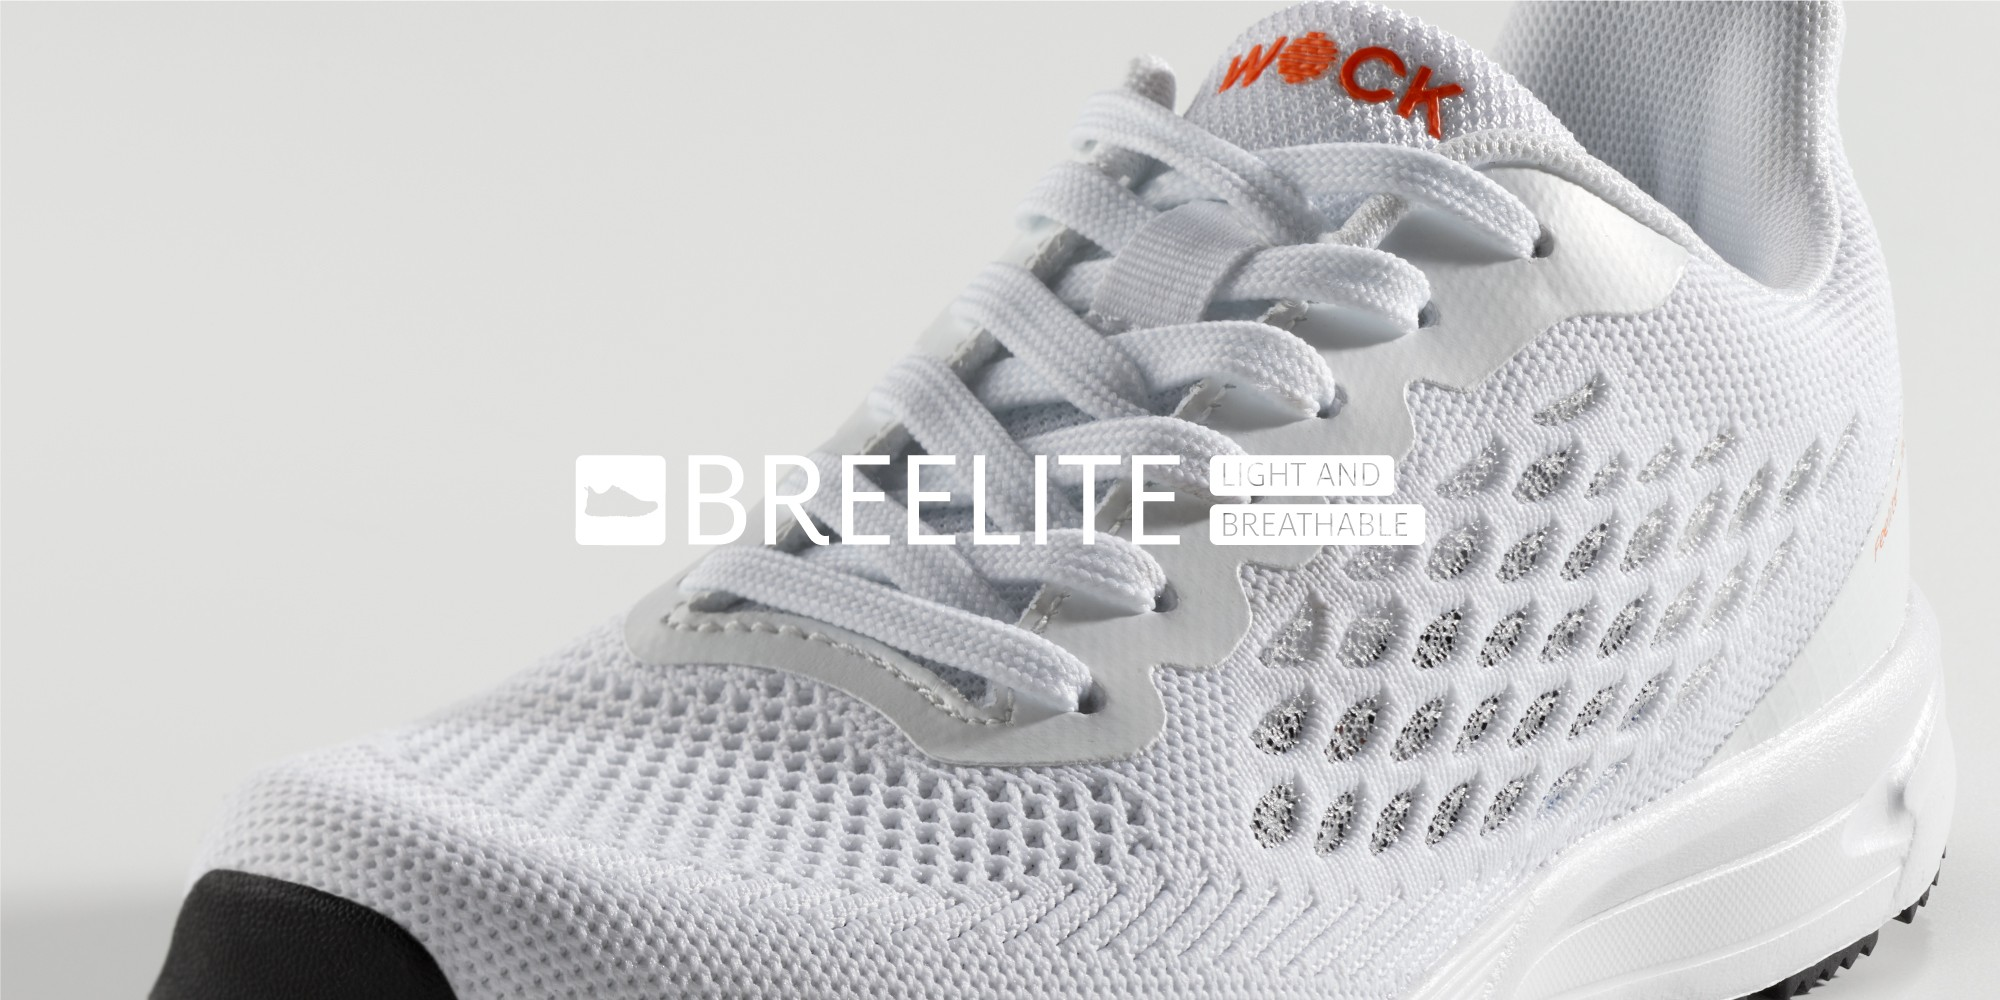 Light and breathable Work sneakers